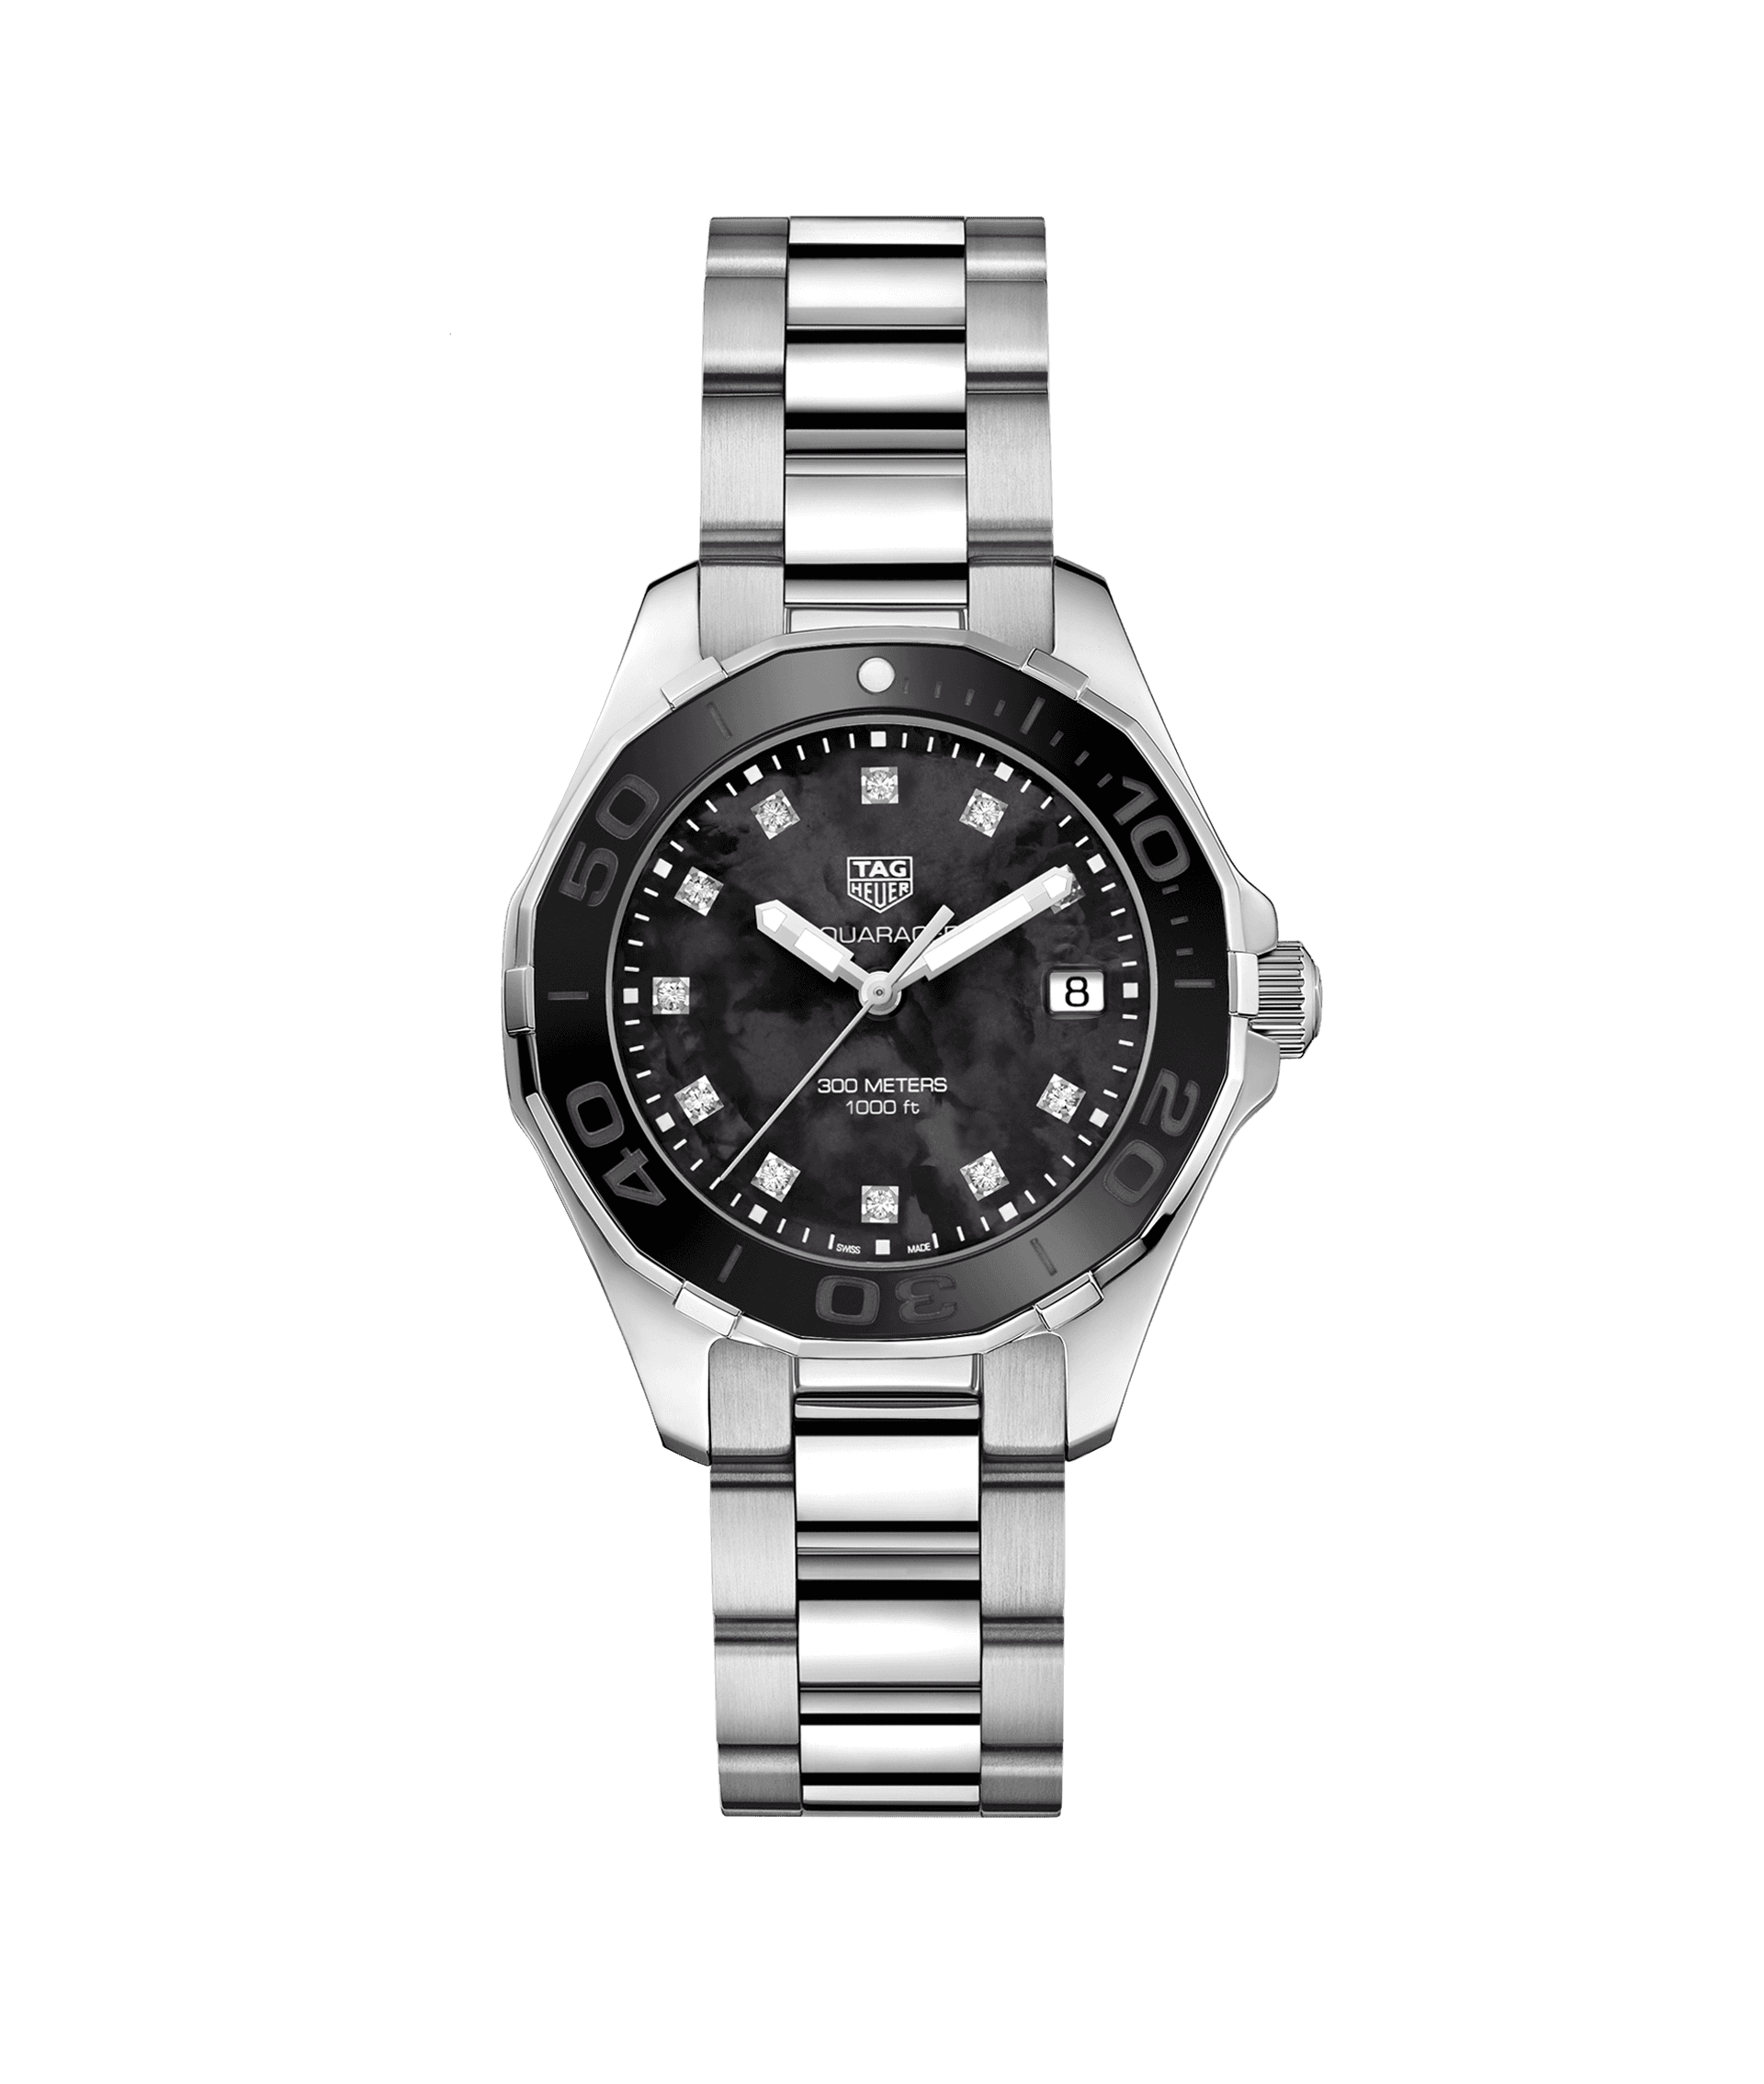 TAG HEUER AQUARACER 300m - 35mm BLACK CERAMIC BEZEL - WAY131M.BA0748